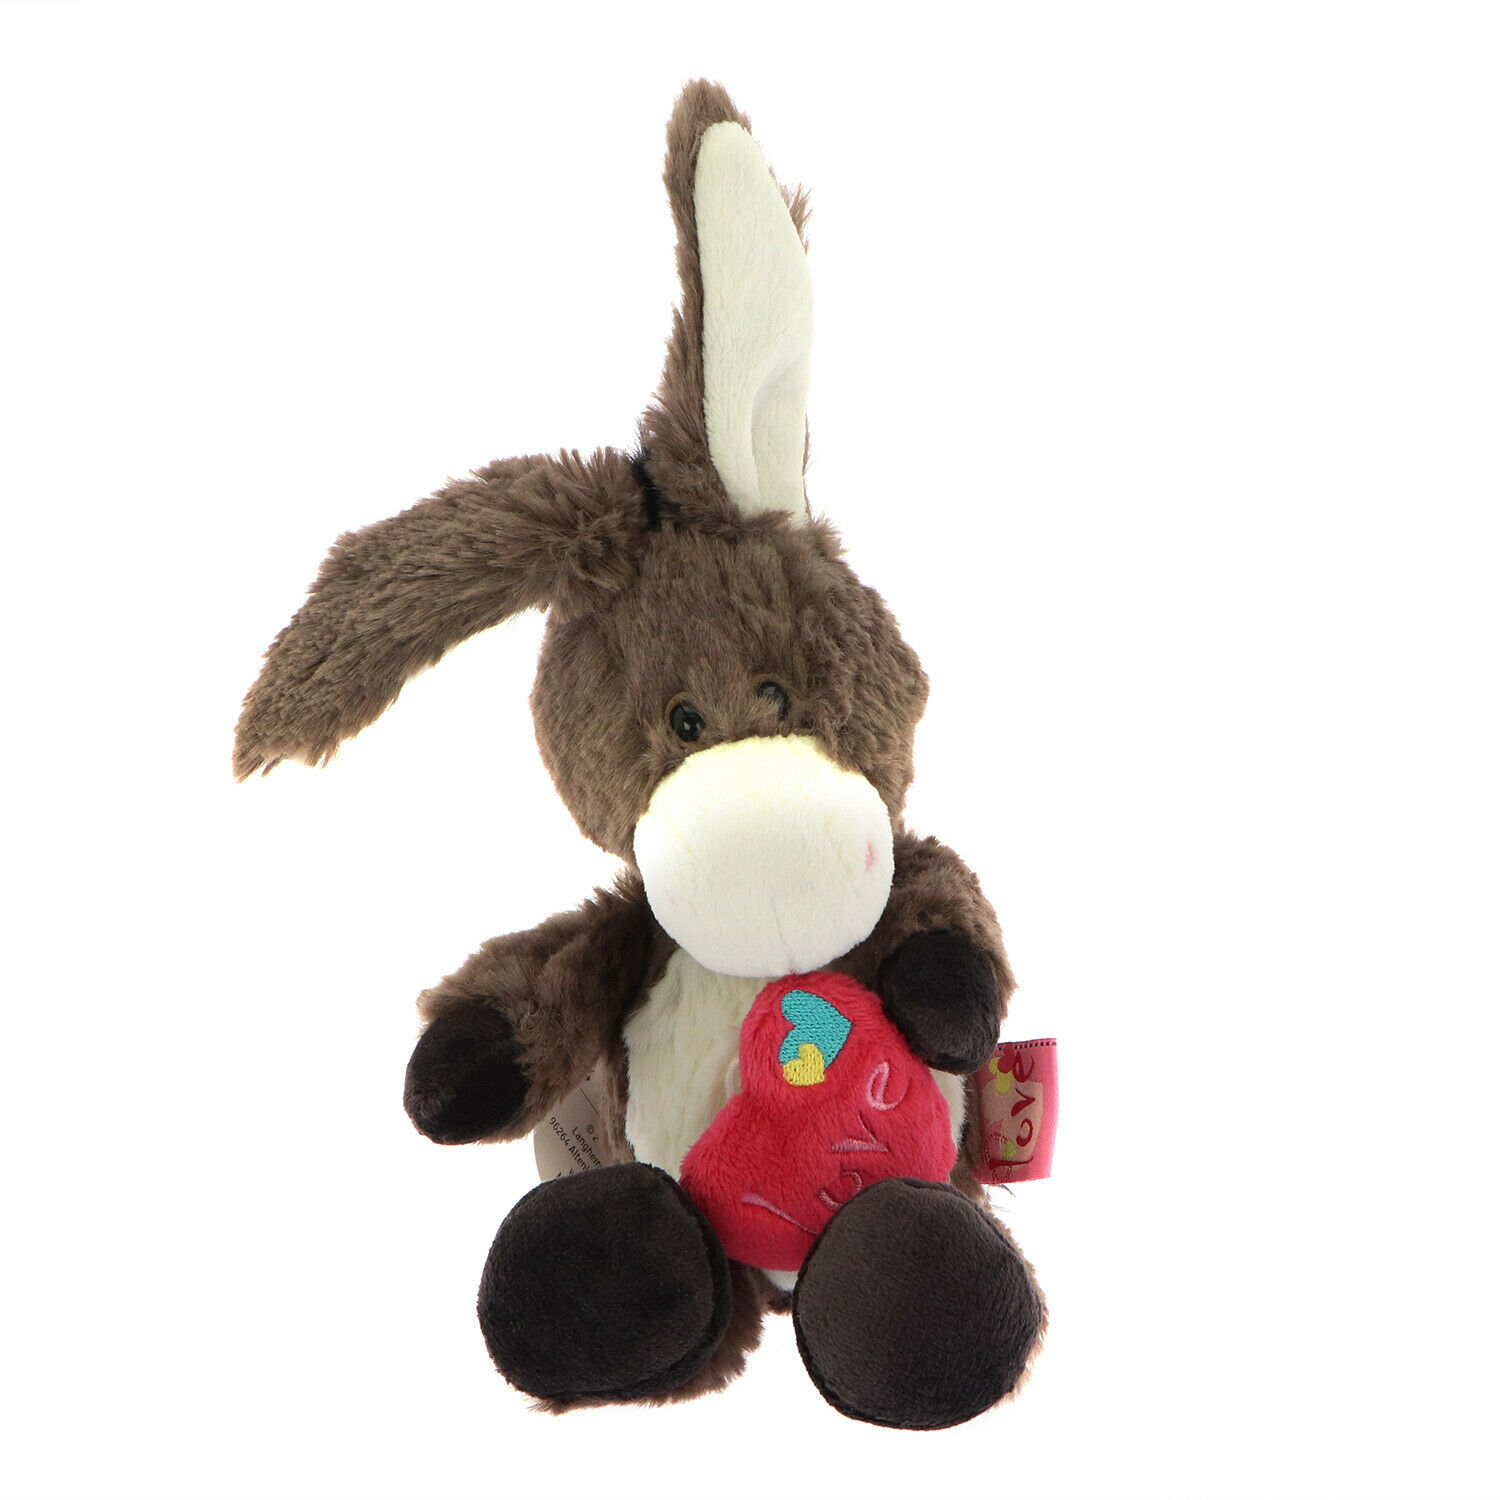 NICI Donkey Brown Red Heart Stuffed Animal Plush Toy Dangling 8 inches 20cm - $21.00